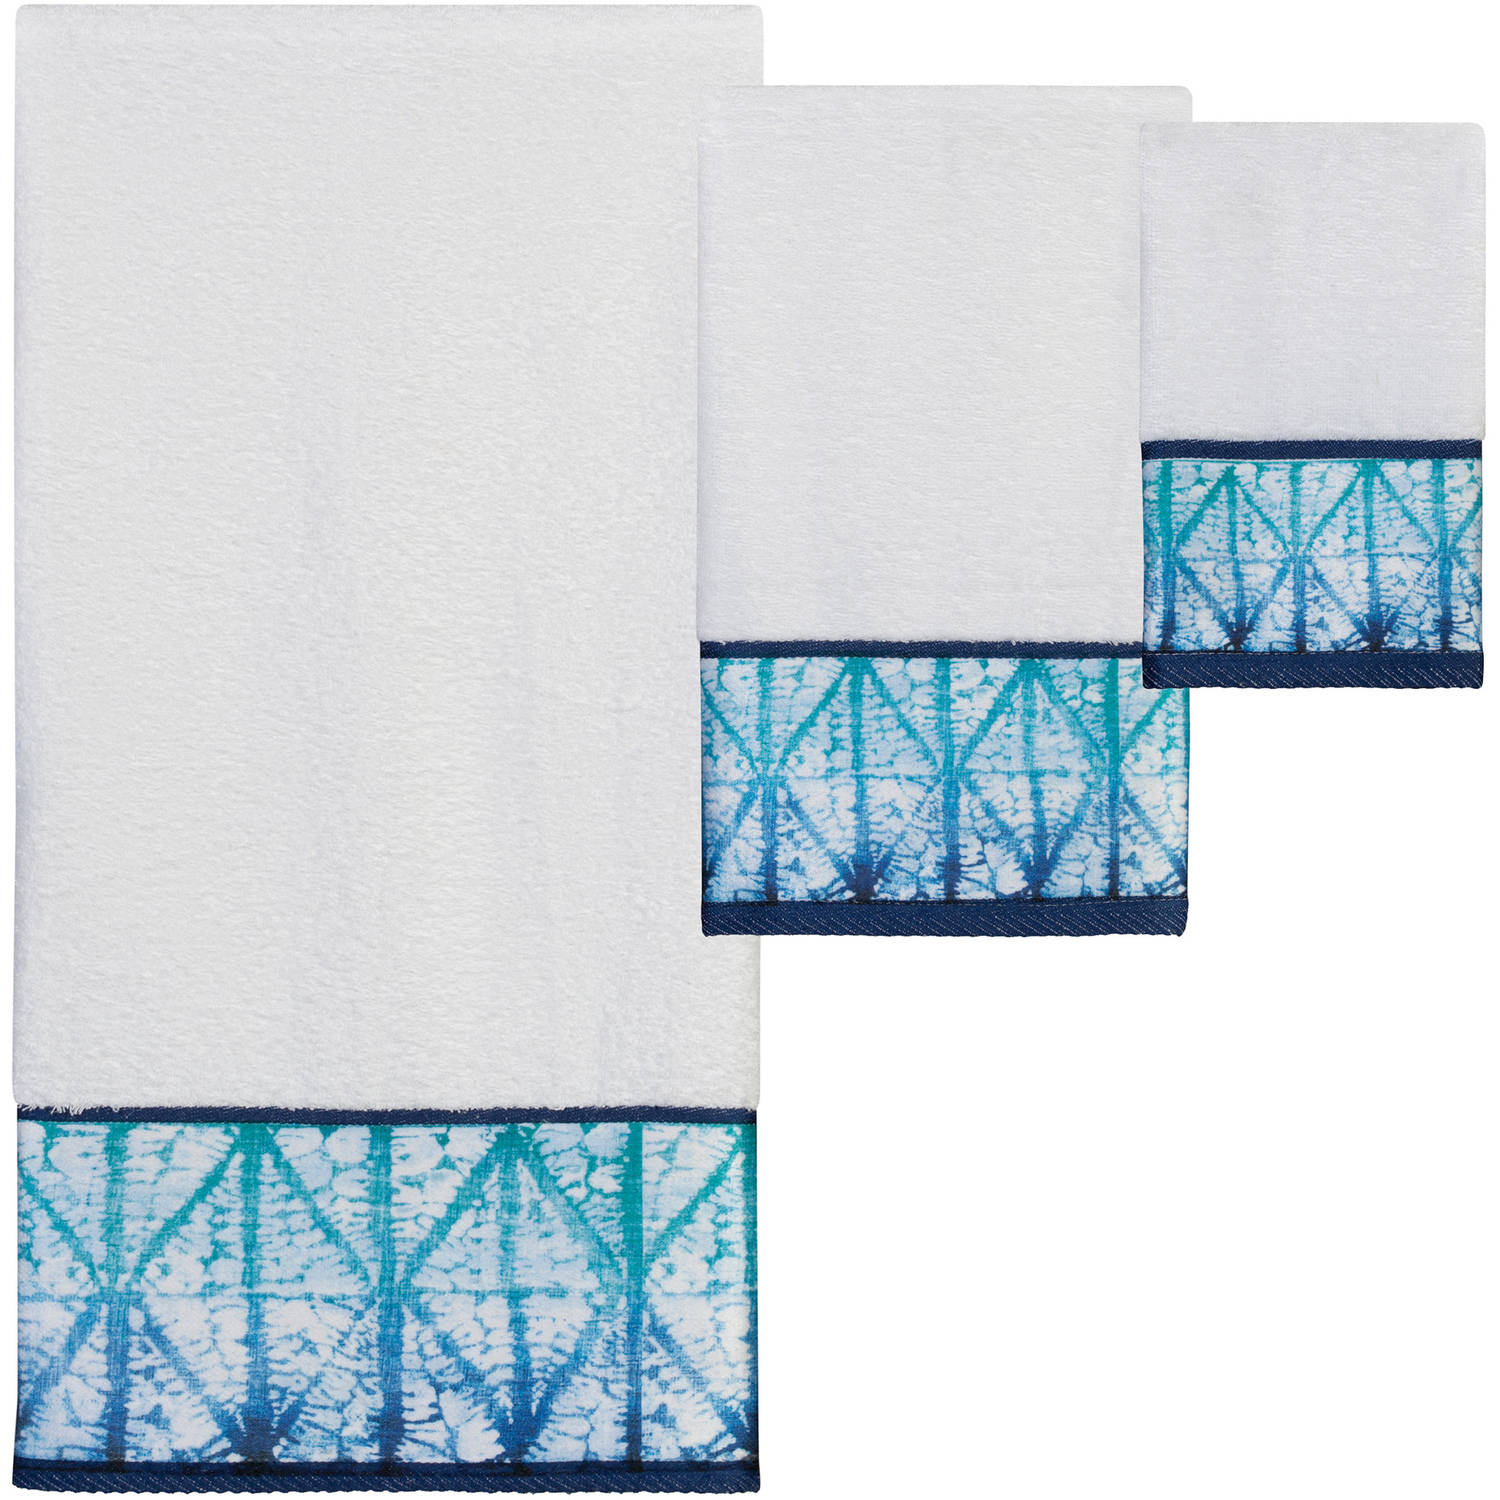 Shibori 3-Piece Towel Set with Bath, Hand and Fingertip Towel